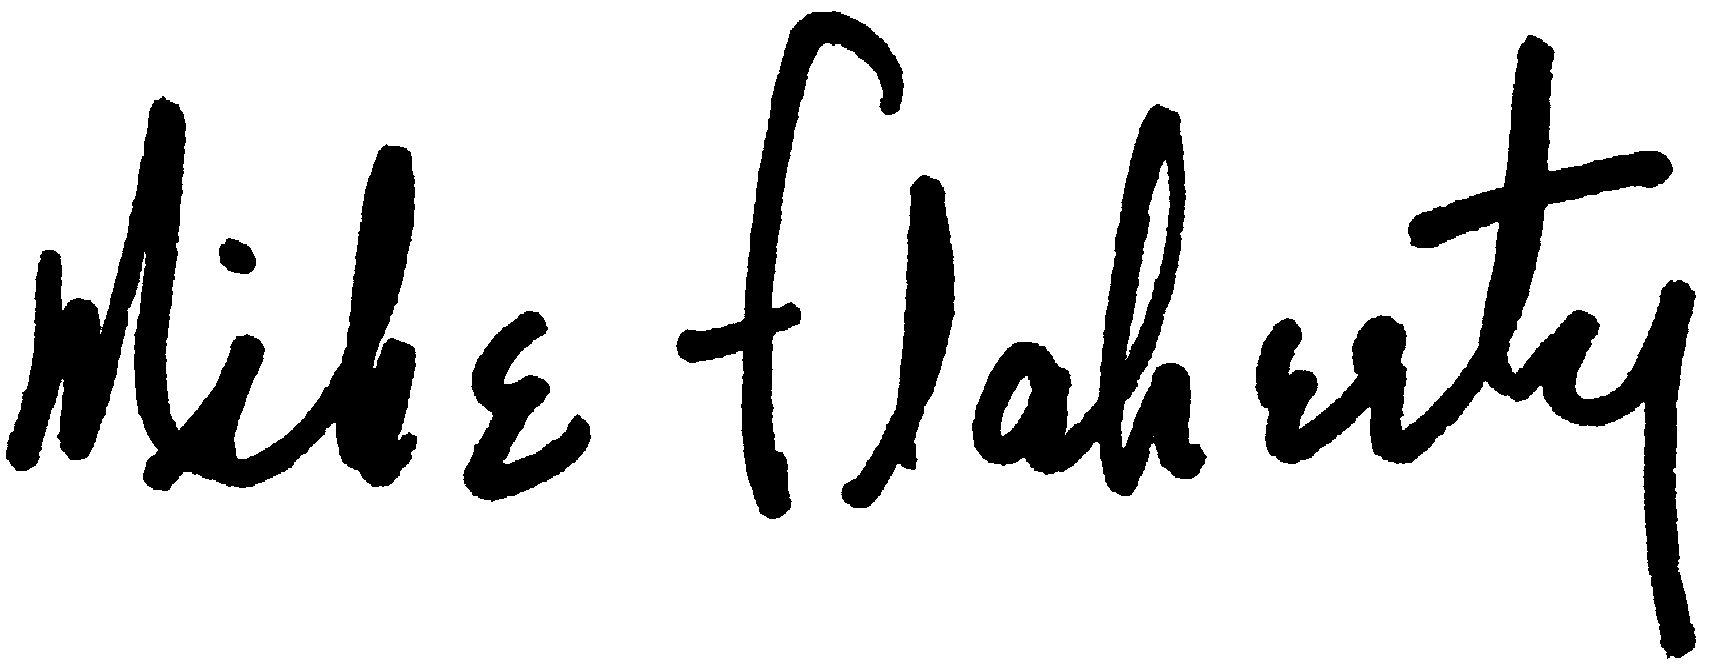 Mike Flaherty signature